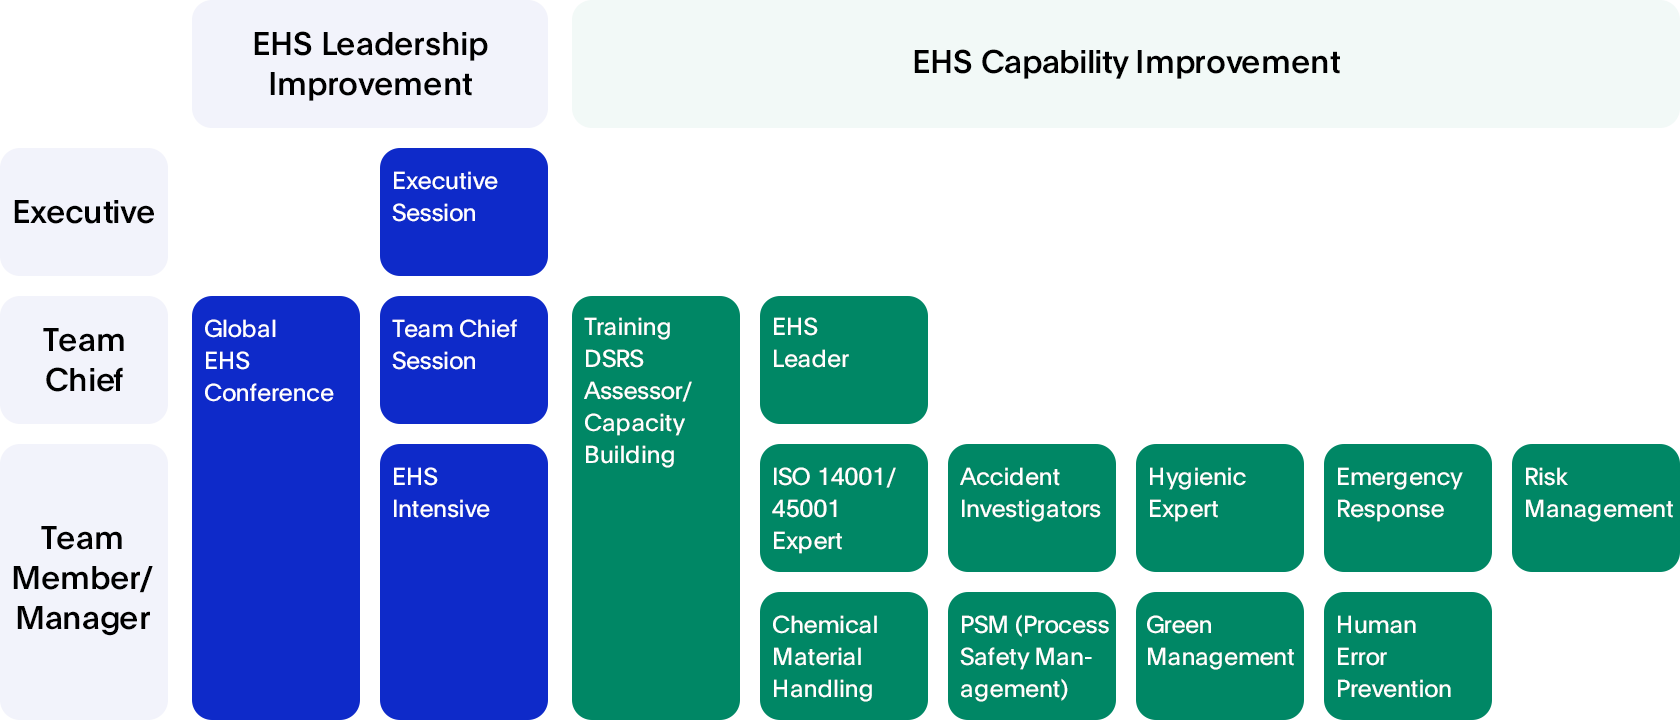 EHS Training Program Image – EHS Leadership Improvement, EHS Capability Improvement